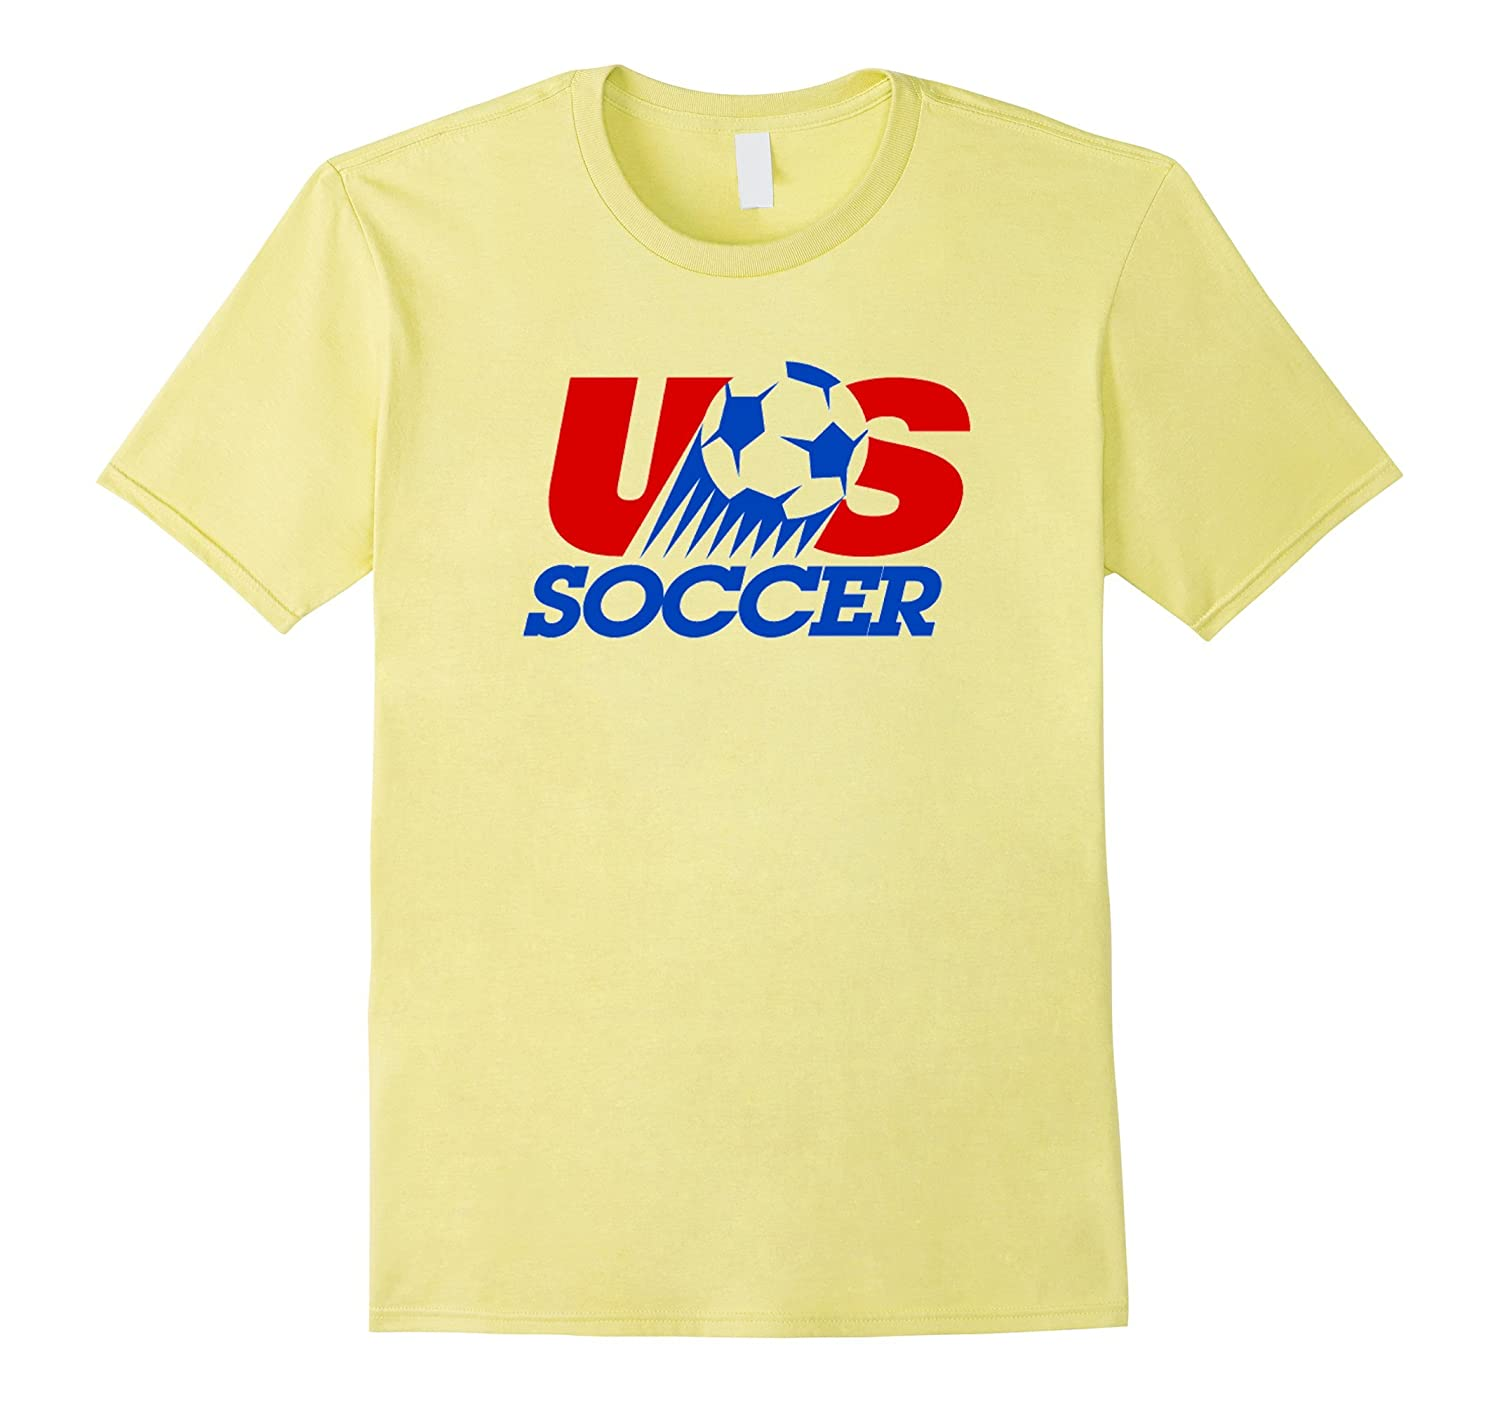 Soccer t shirt for girls boys teens men women art for Boys soccer t shirts